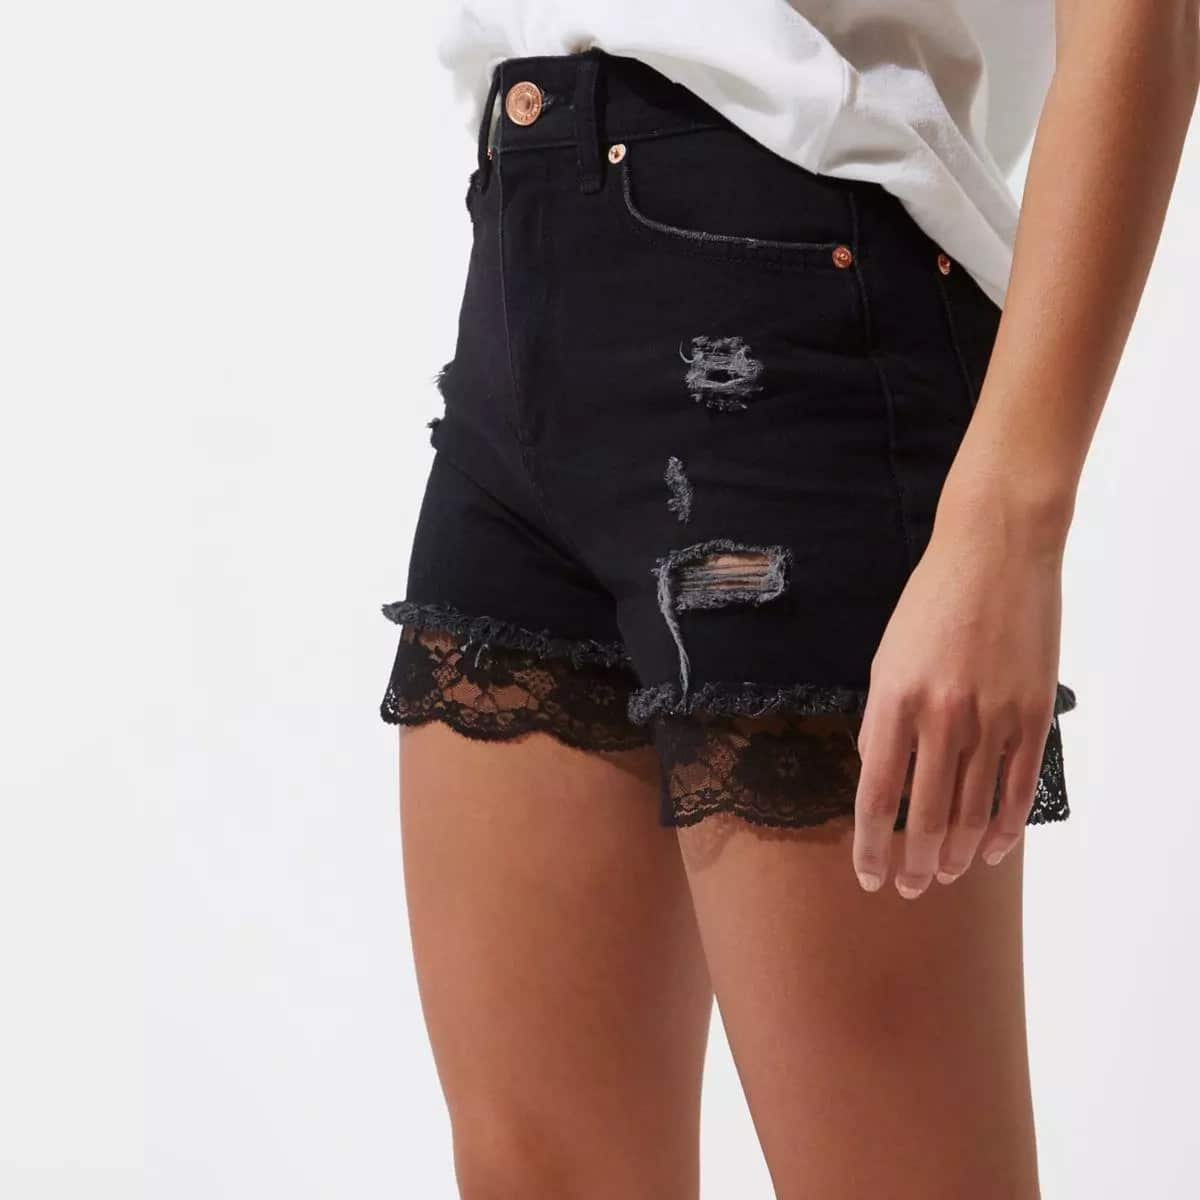 Jeans shorts with French lace trim